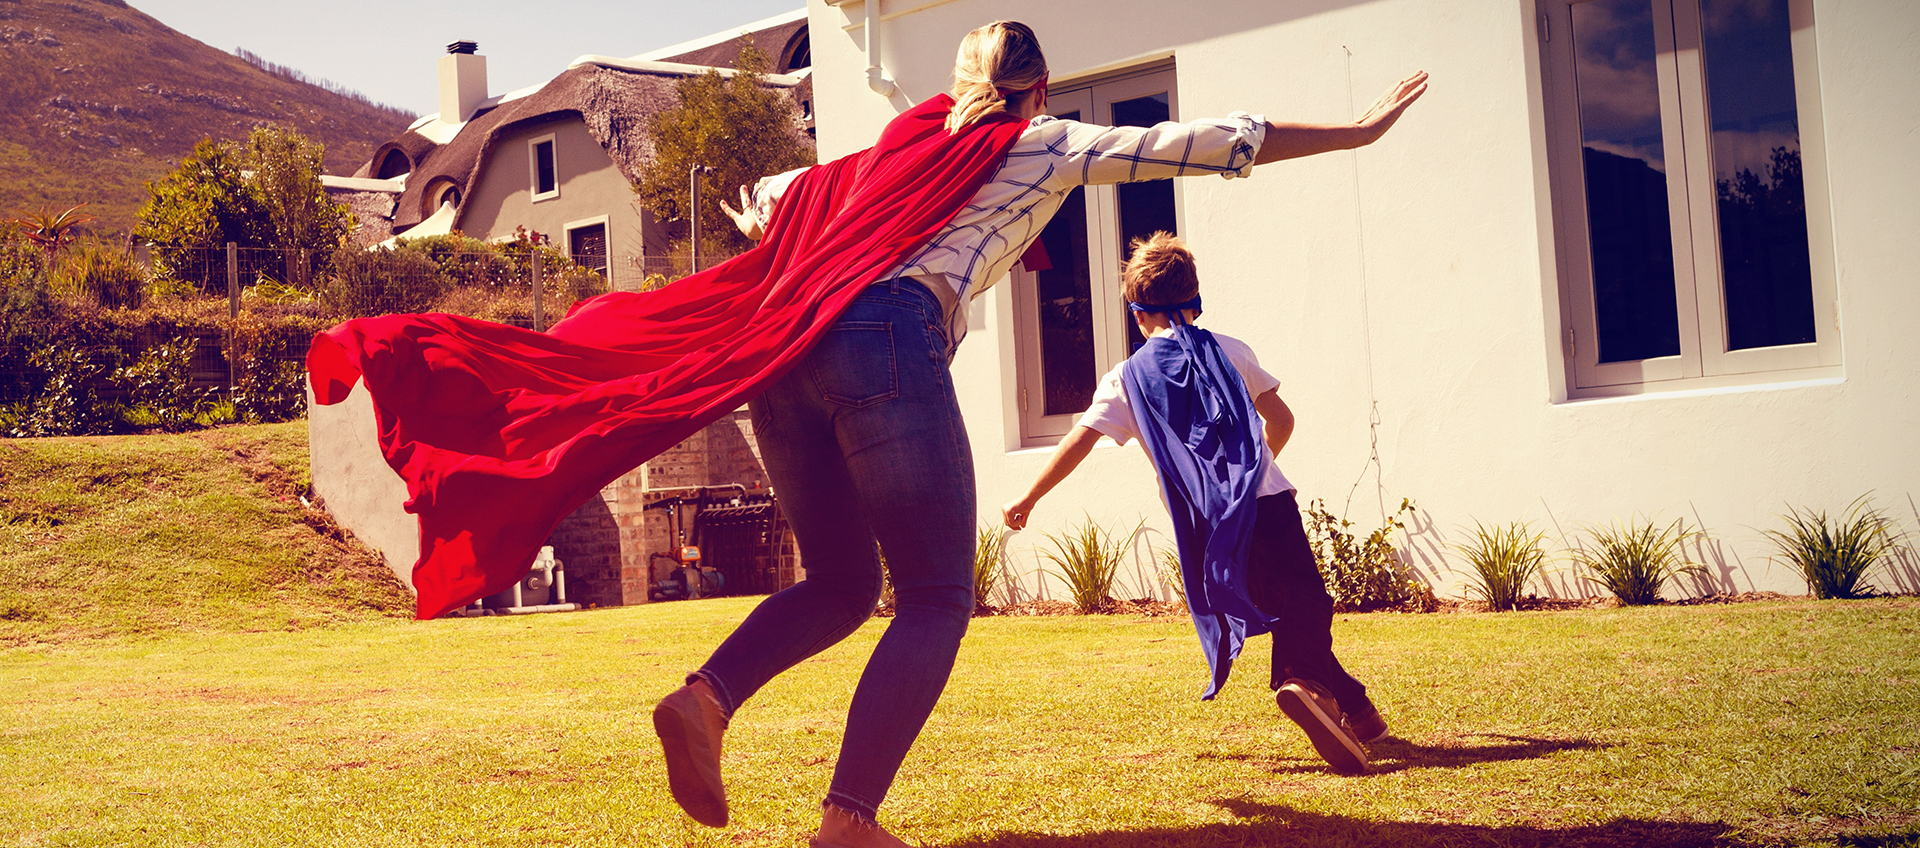 Mother and son in superhero costume playing in backyard